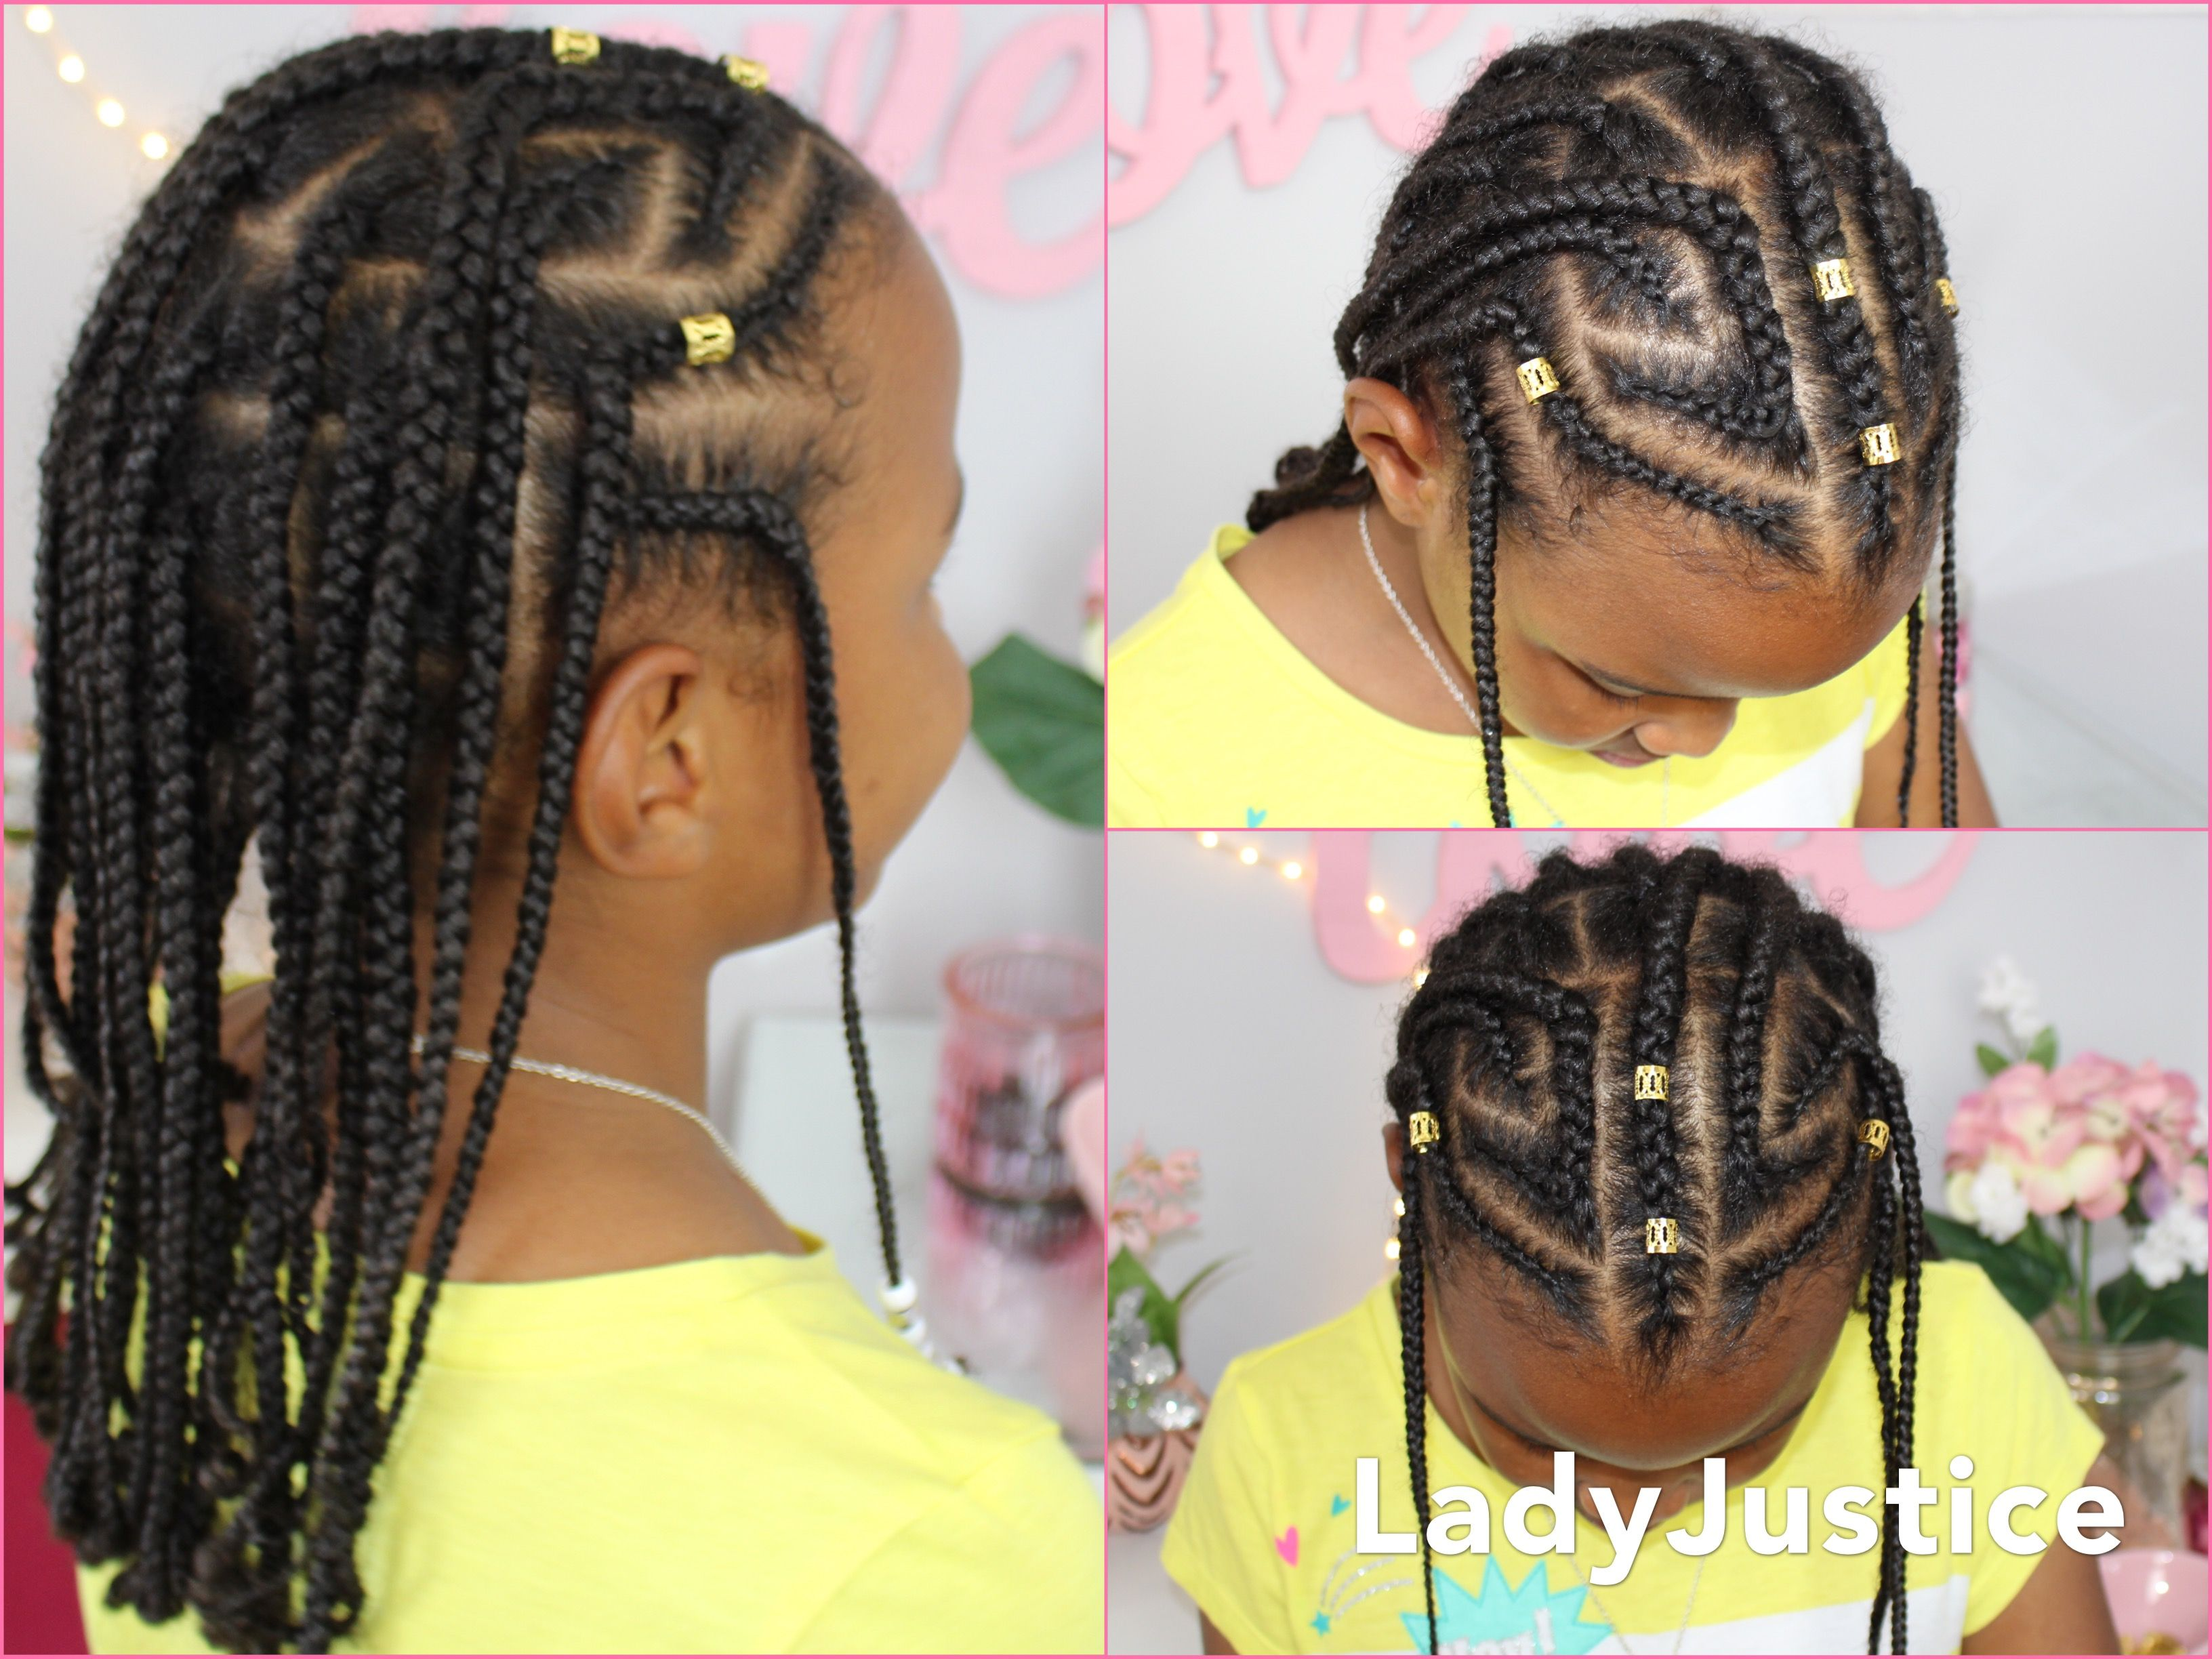 wallpaper effects of braids on natural hair iphone hd fulani styles to try out soon kids braided hairstyles